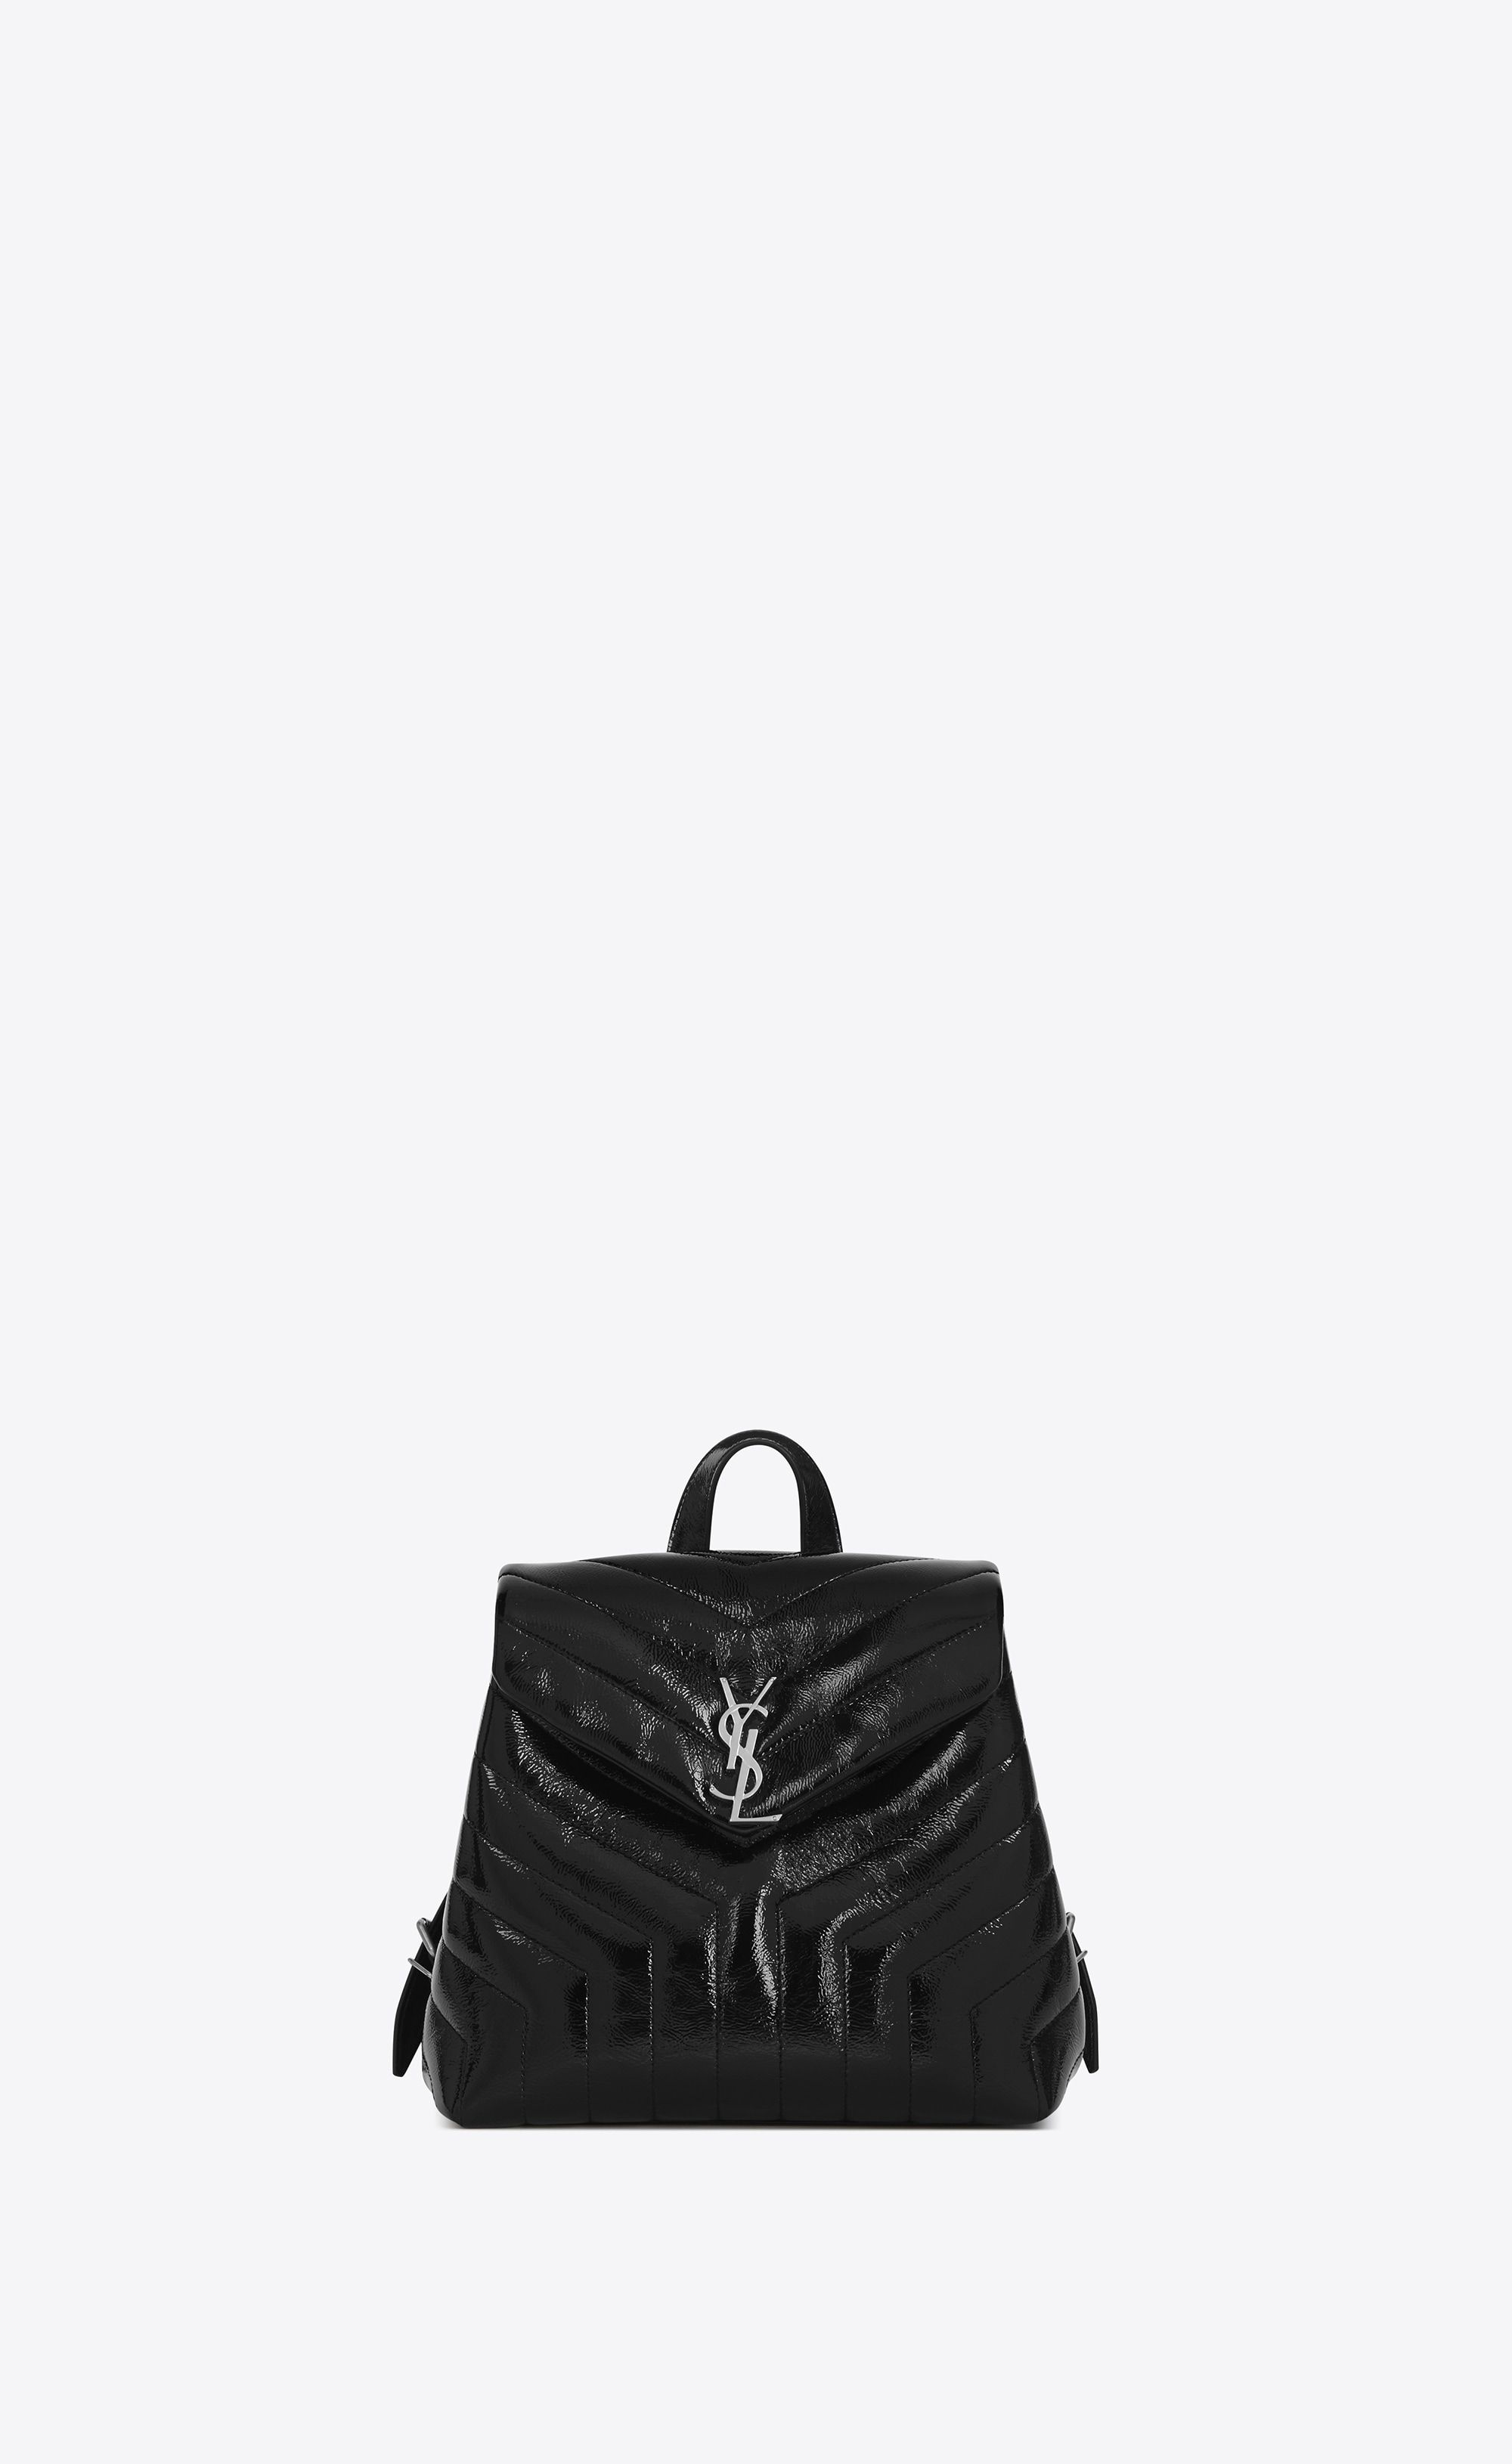 5d43d467f806 Saint Laurent Small LOULOU Backpack In Black